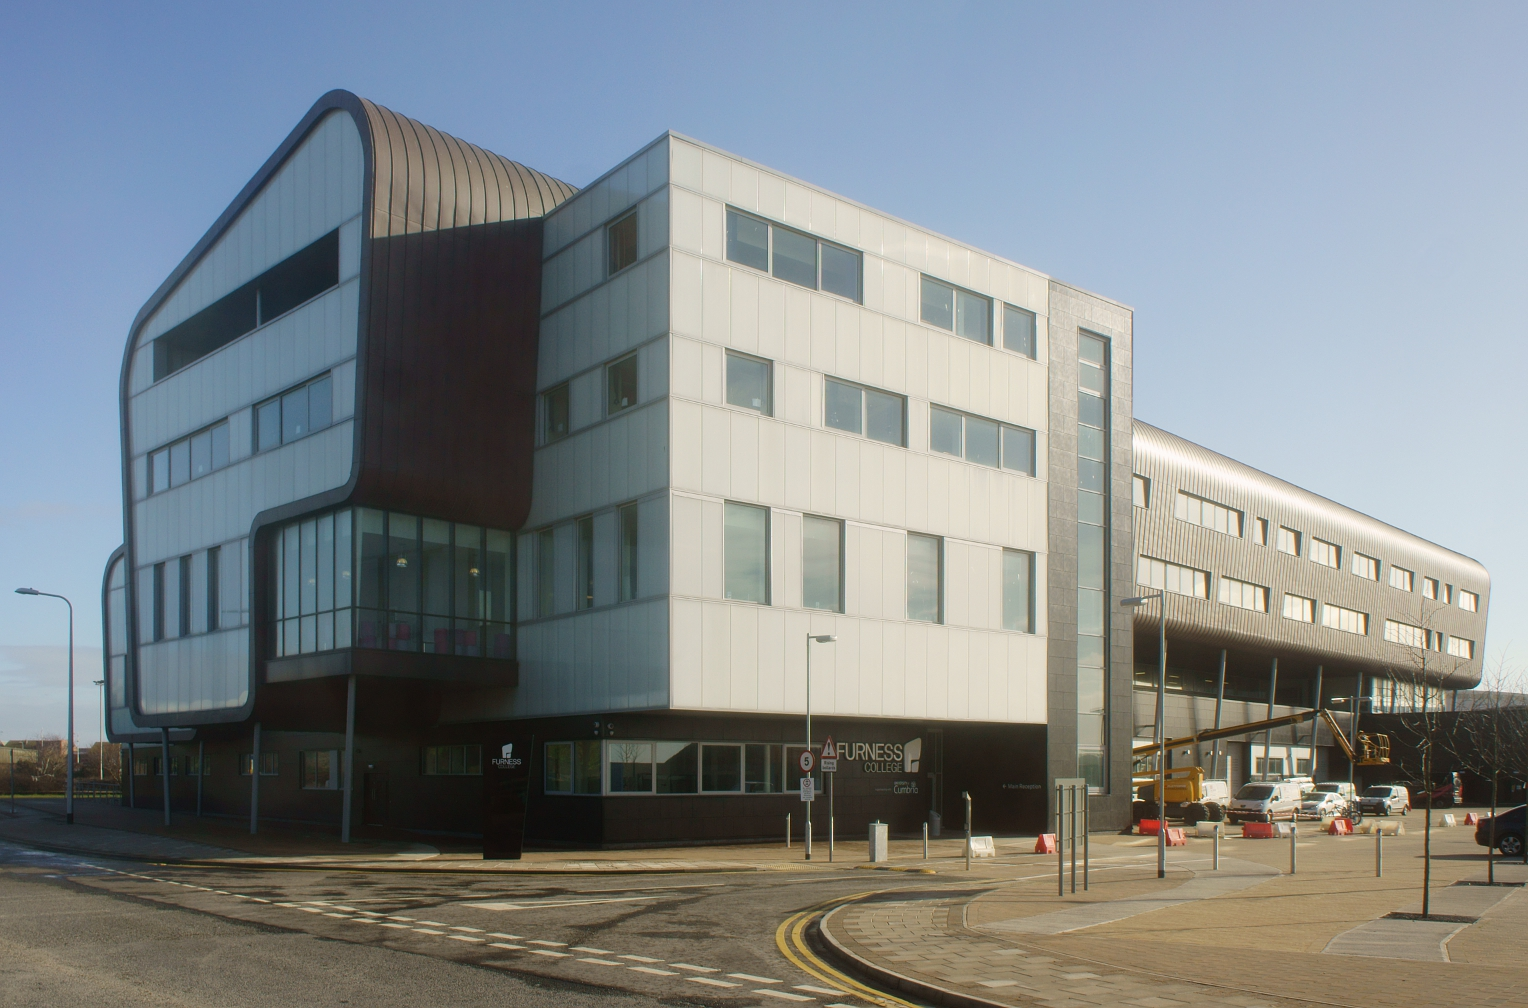 Furness College campus, Barrow-in-Furness